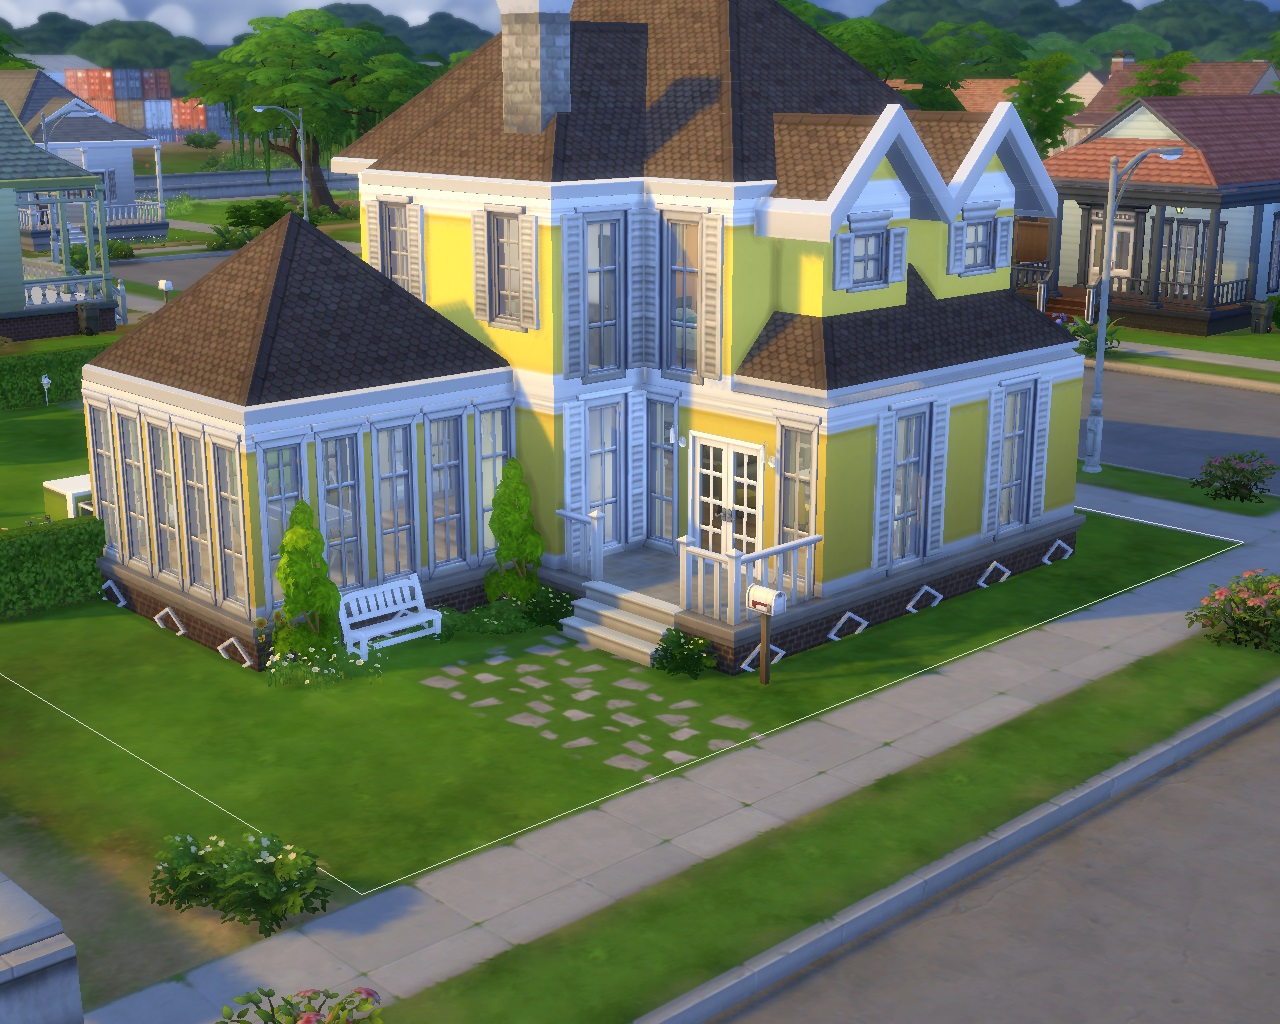 House design sims 4 - With Sims 4 Home Design 2